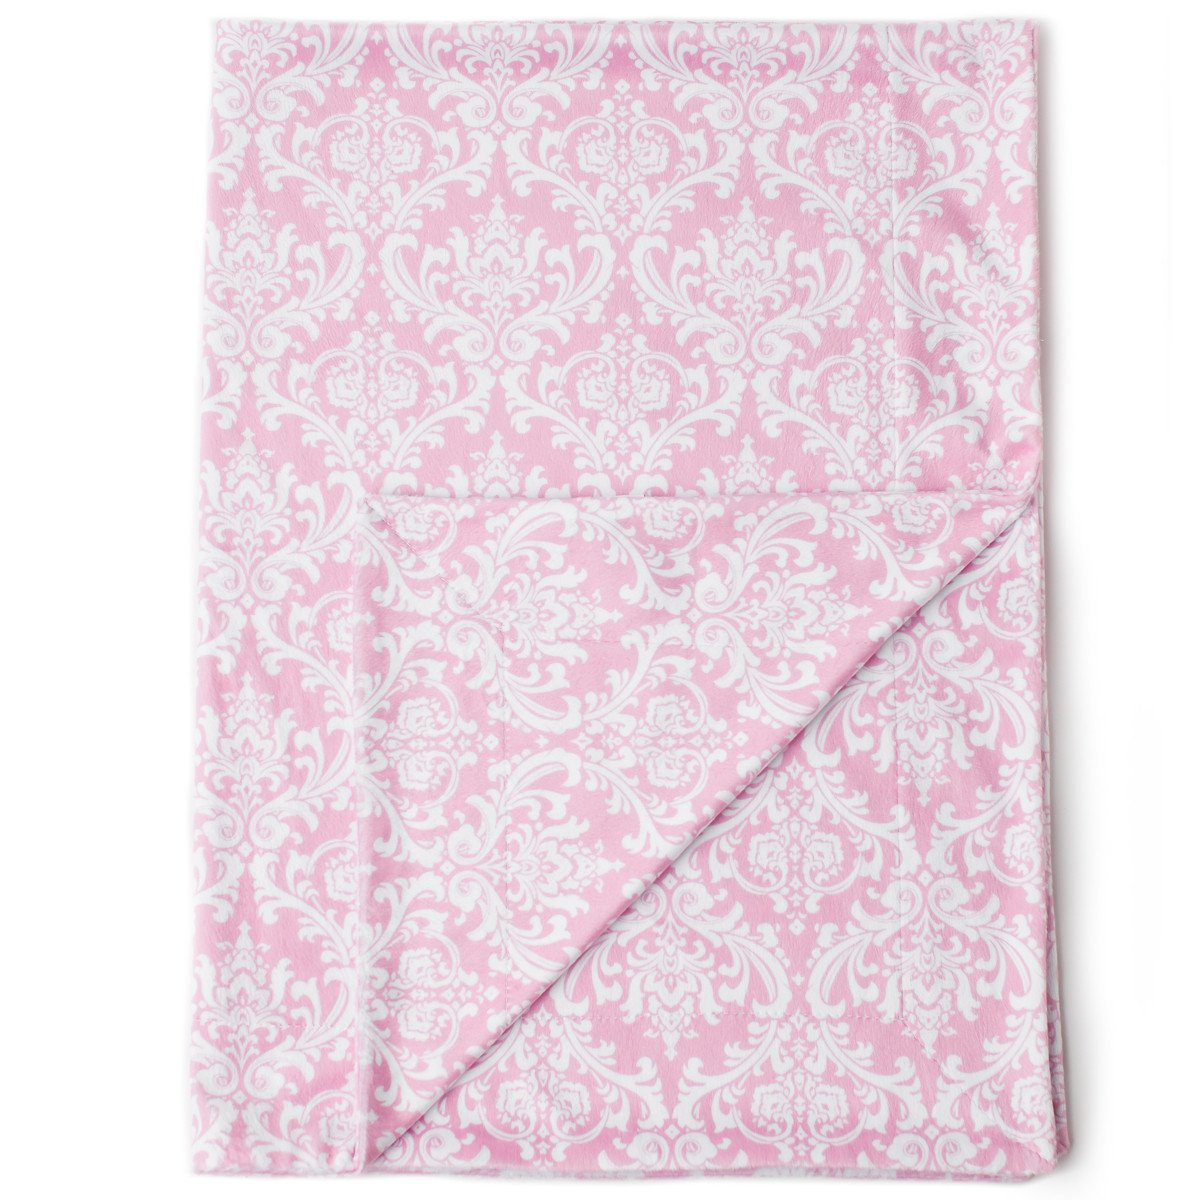 """Kids N' Such Minky Baby Blanket 30"""" x 40"""" - Pink Damask - Soft Swaddle Blanket for Newborns and Toddlers - Best for Boys or Girls Crib Bedding, Nursery, and Security - Plush Double Layer Fleece Fabric"""